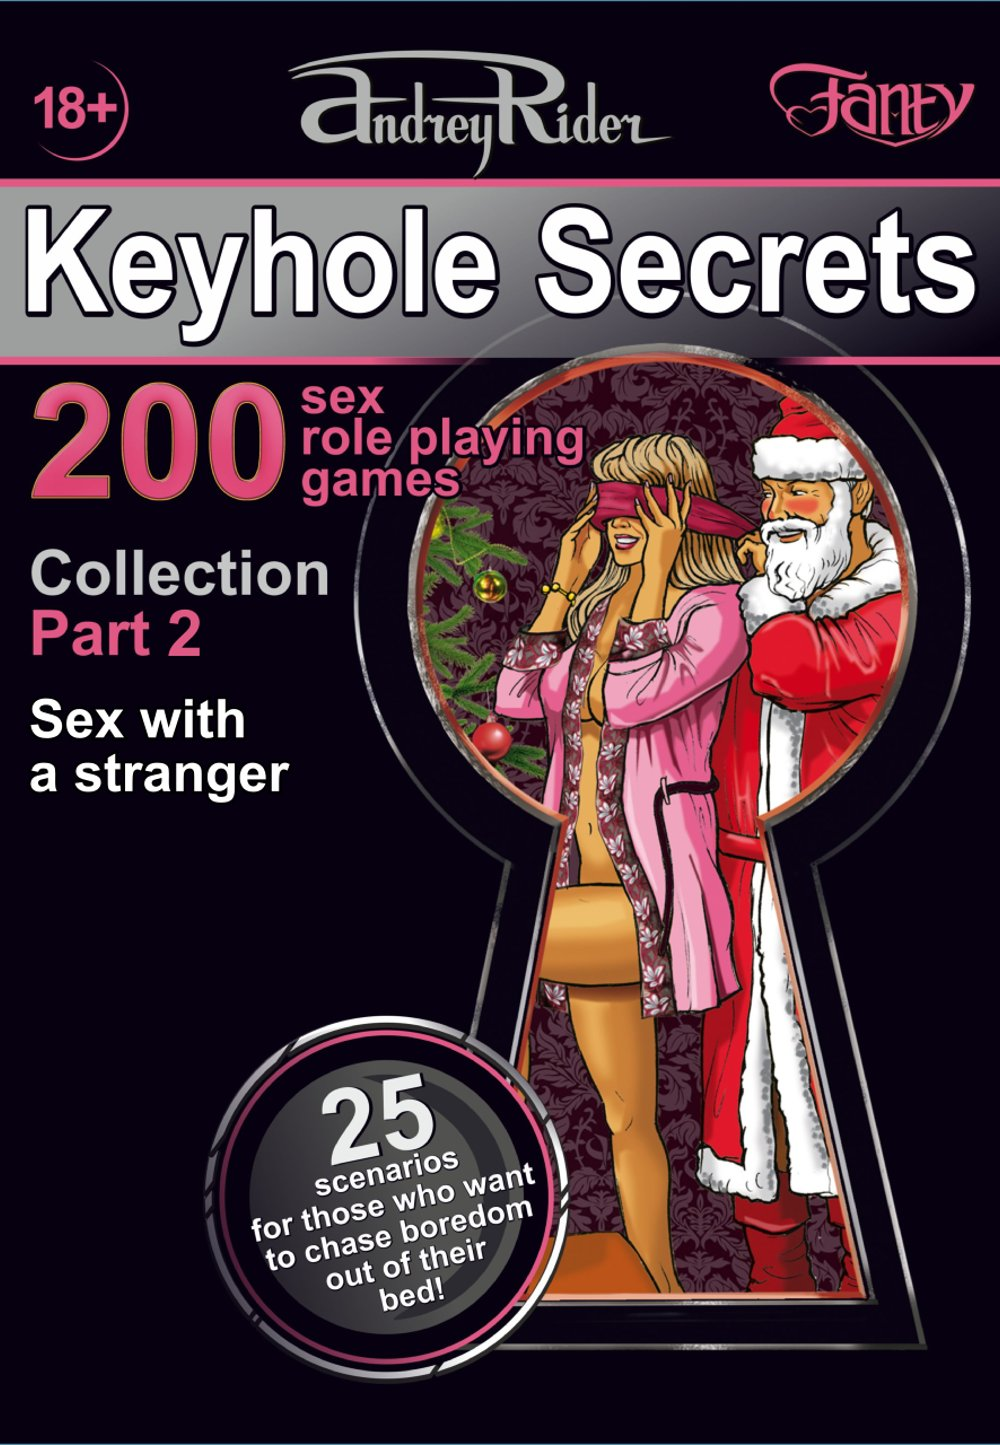 Collection of 200 Sex Role Playing Games. Part 2 (scenarios 26-50)